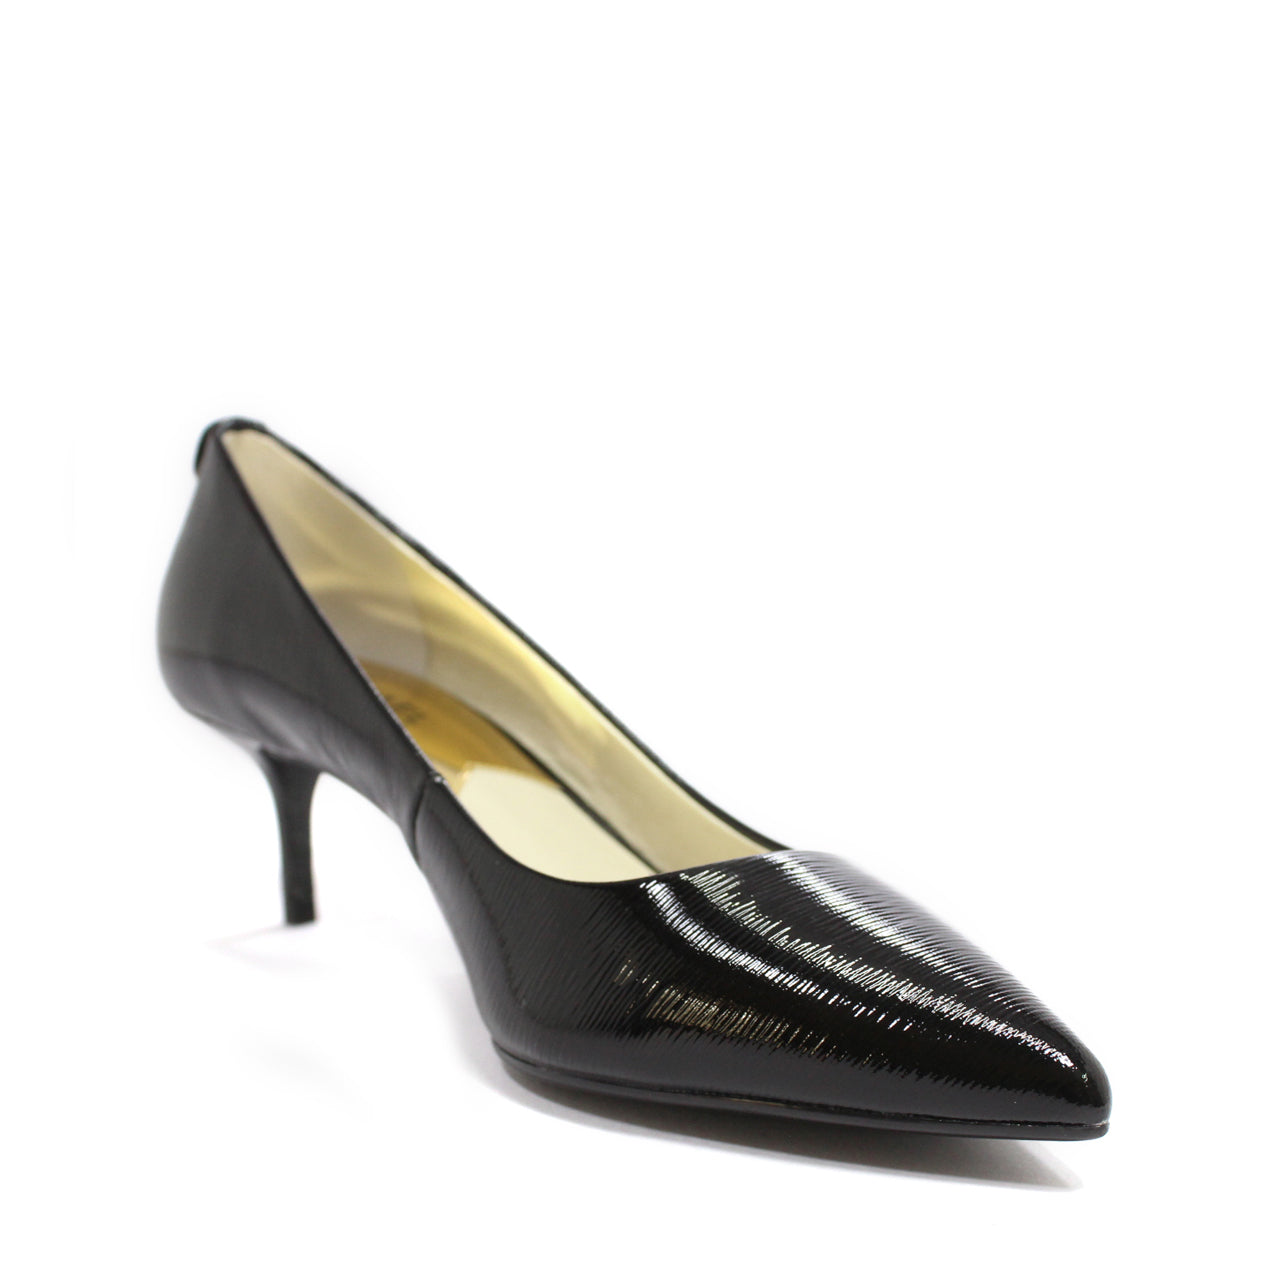 Michael Kors Flex Patent Mid-Heel Kitten Pumps